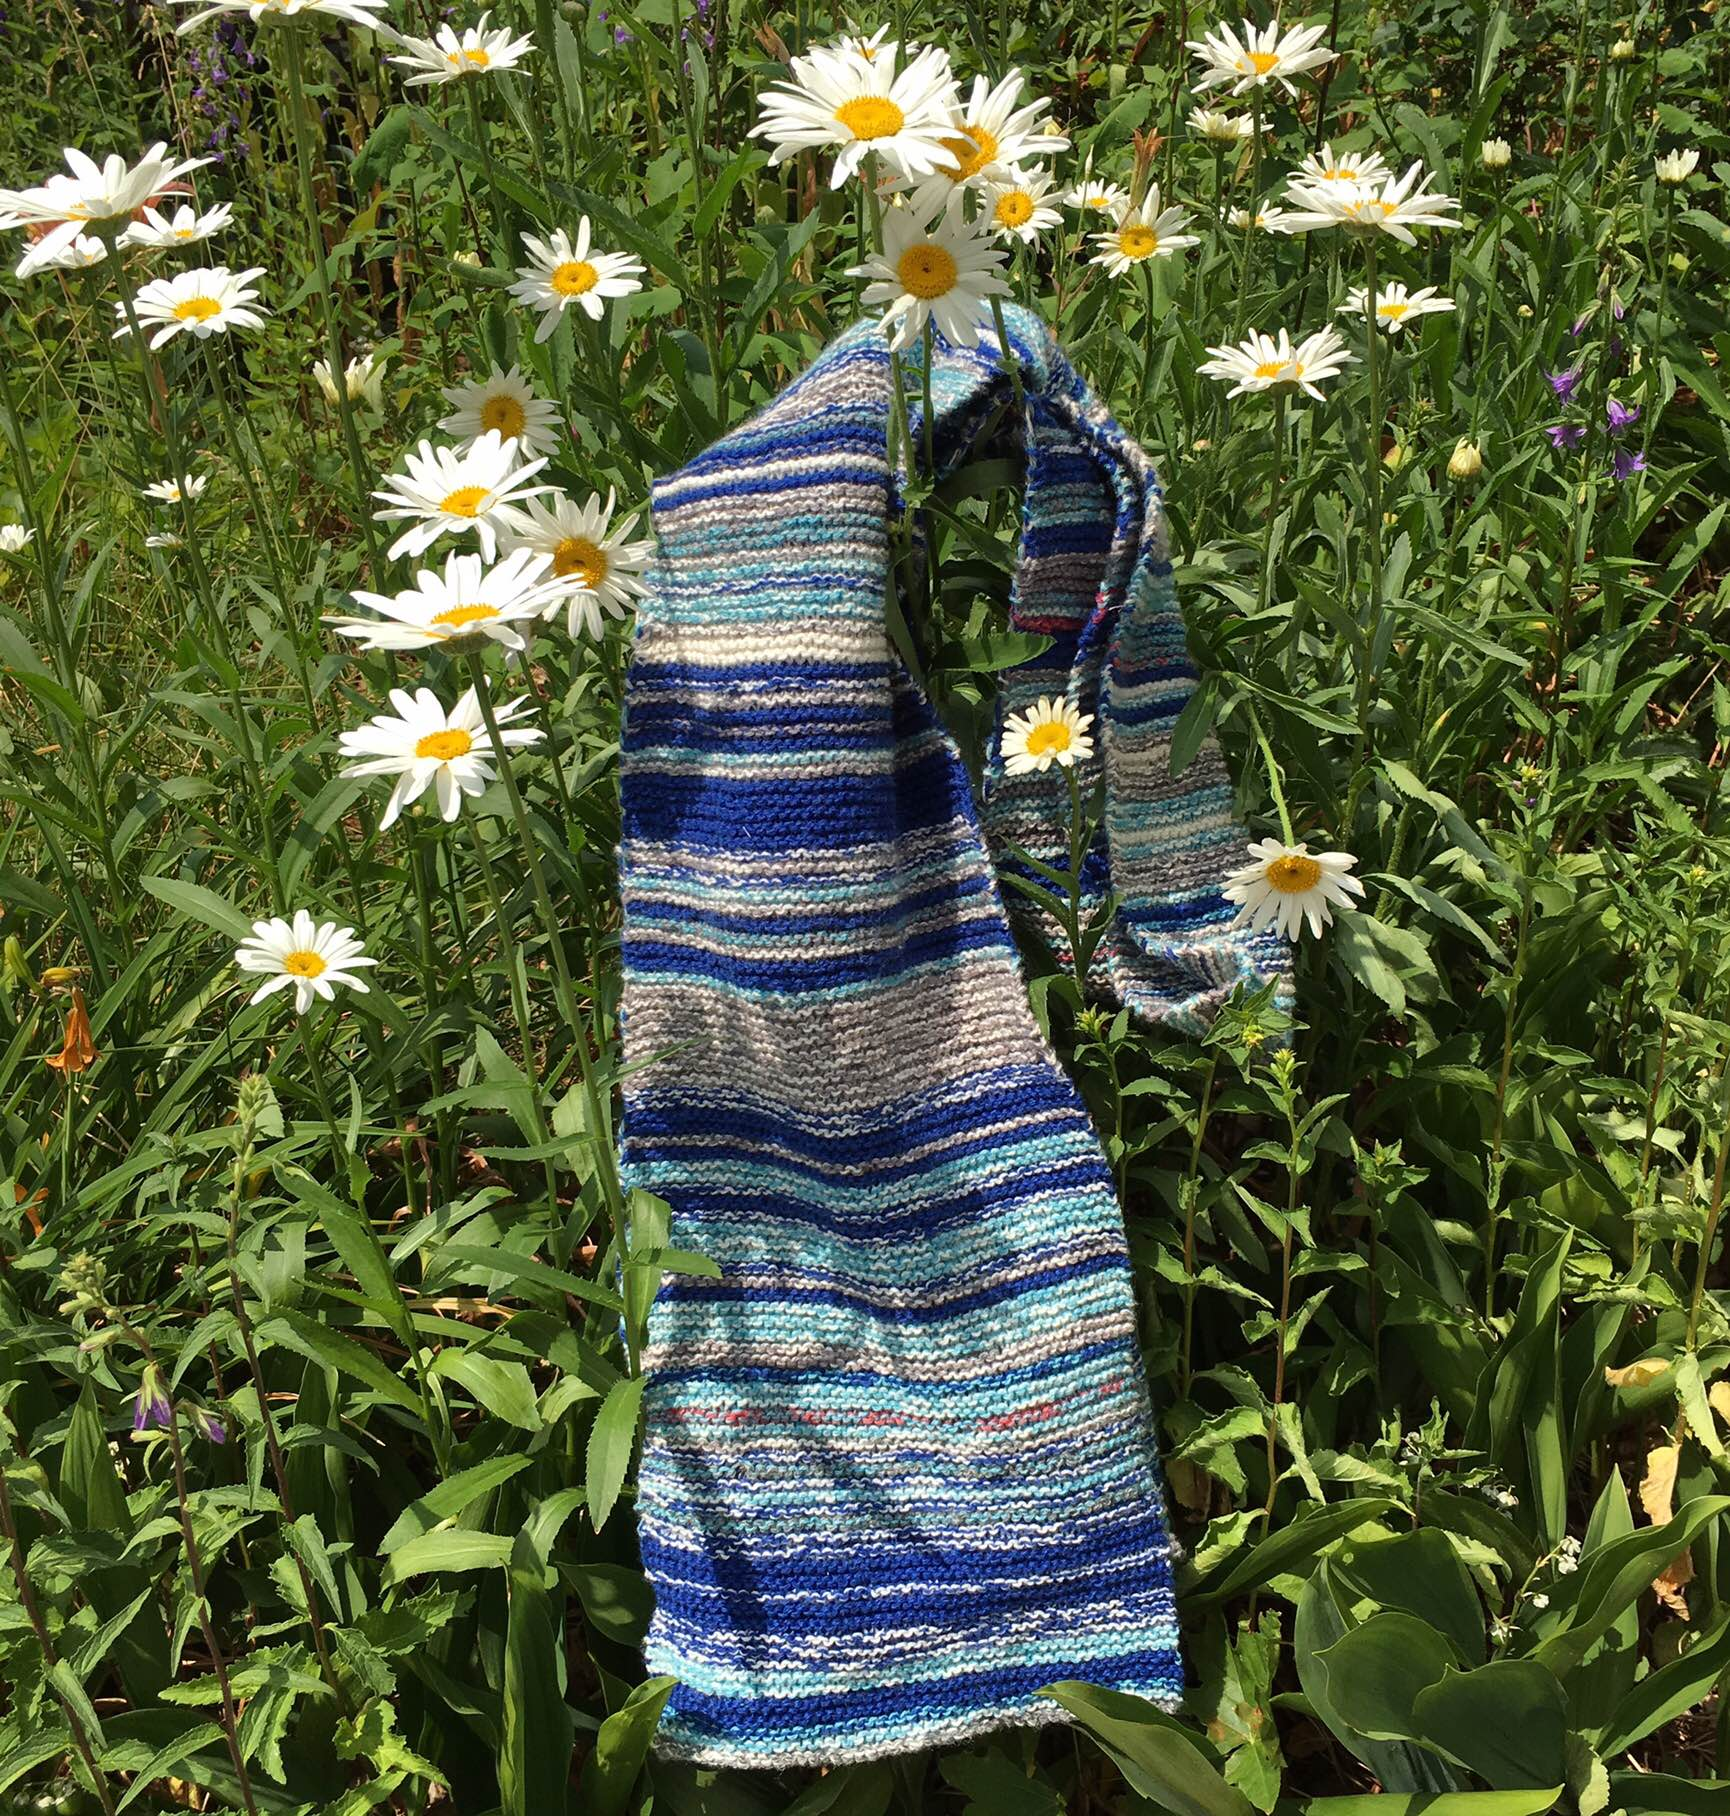 Completed Sky Scarf June 28, 2016